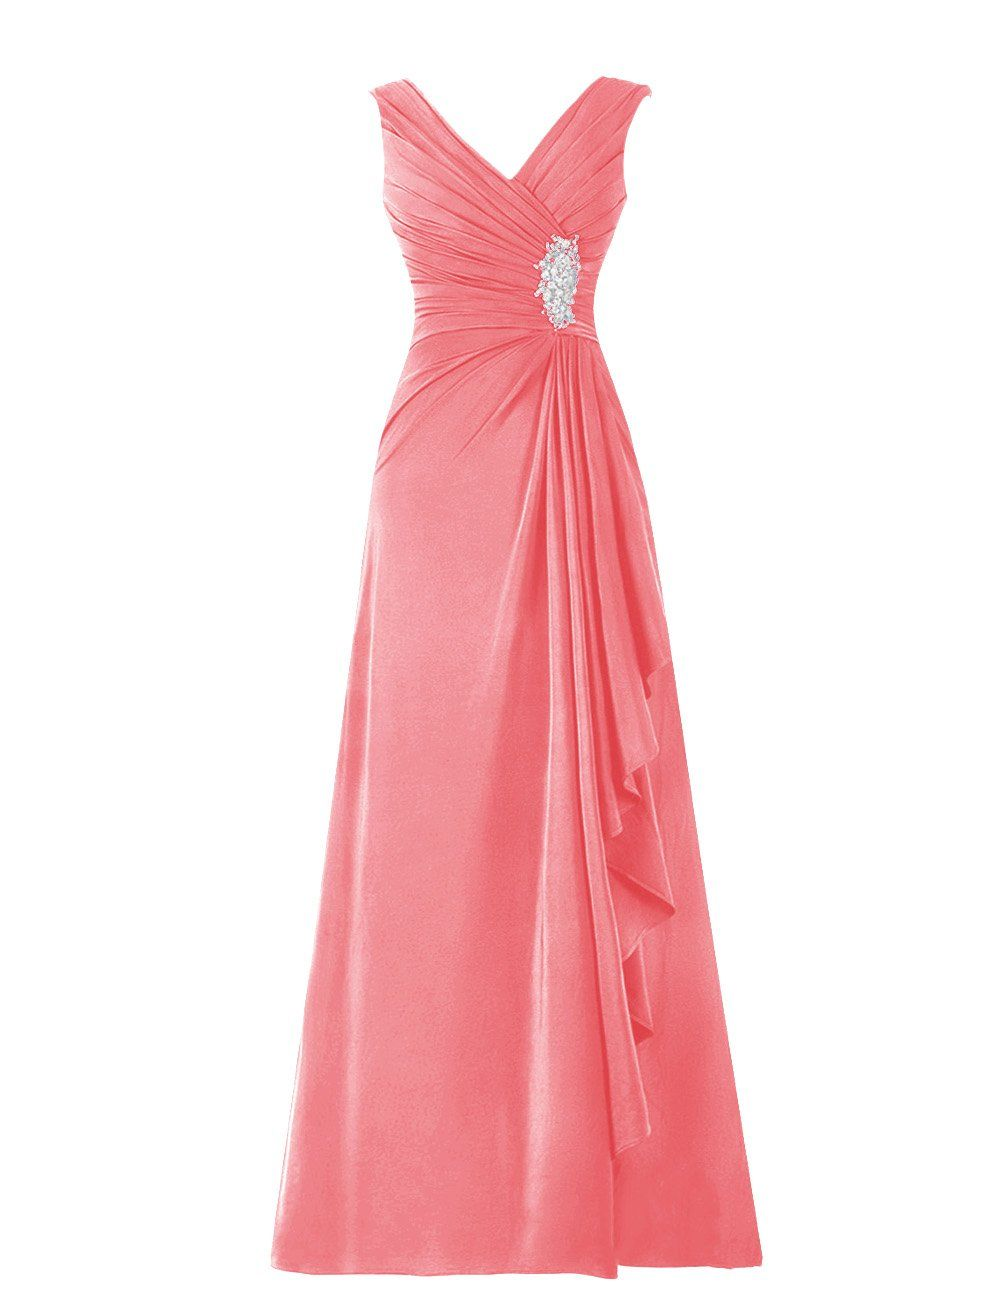 Diyouth Long Chiffon Pleated Ruffles Mother of the Bride Dress Coral ...